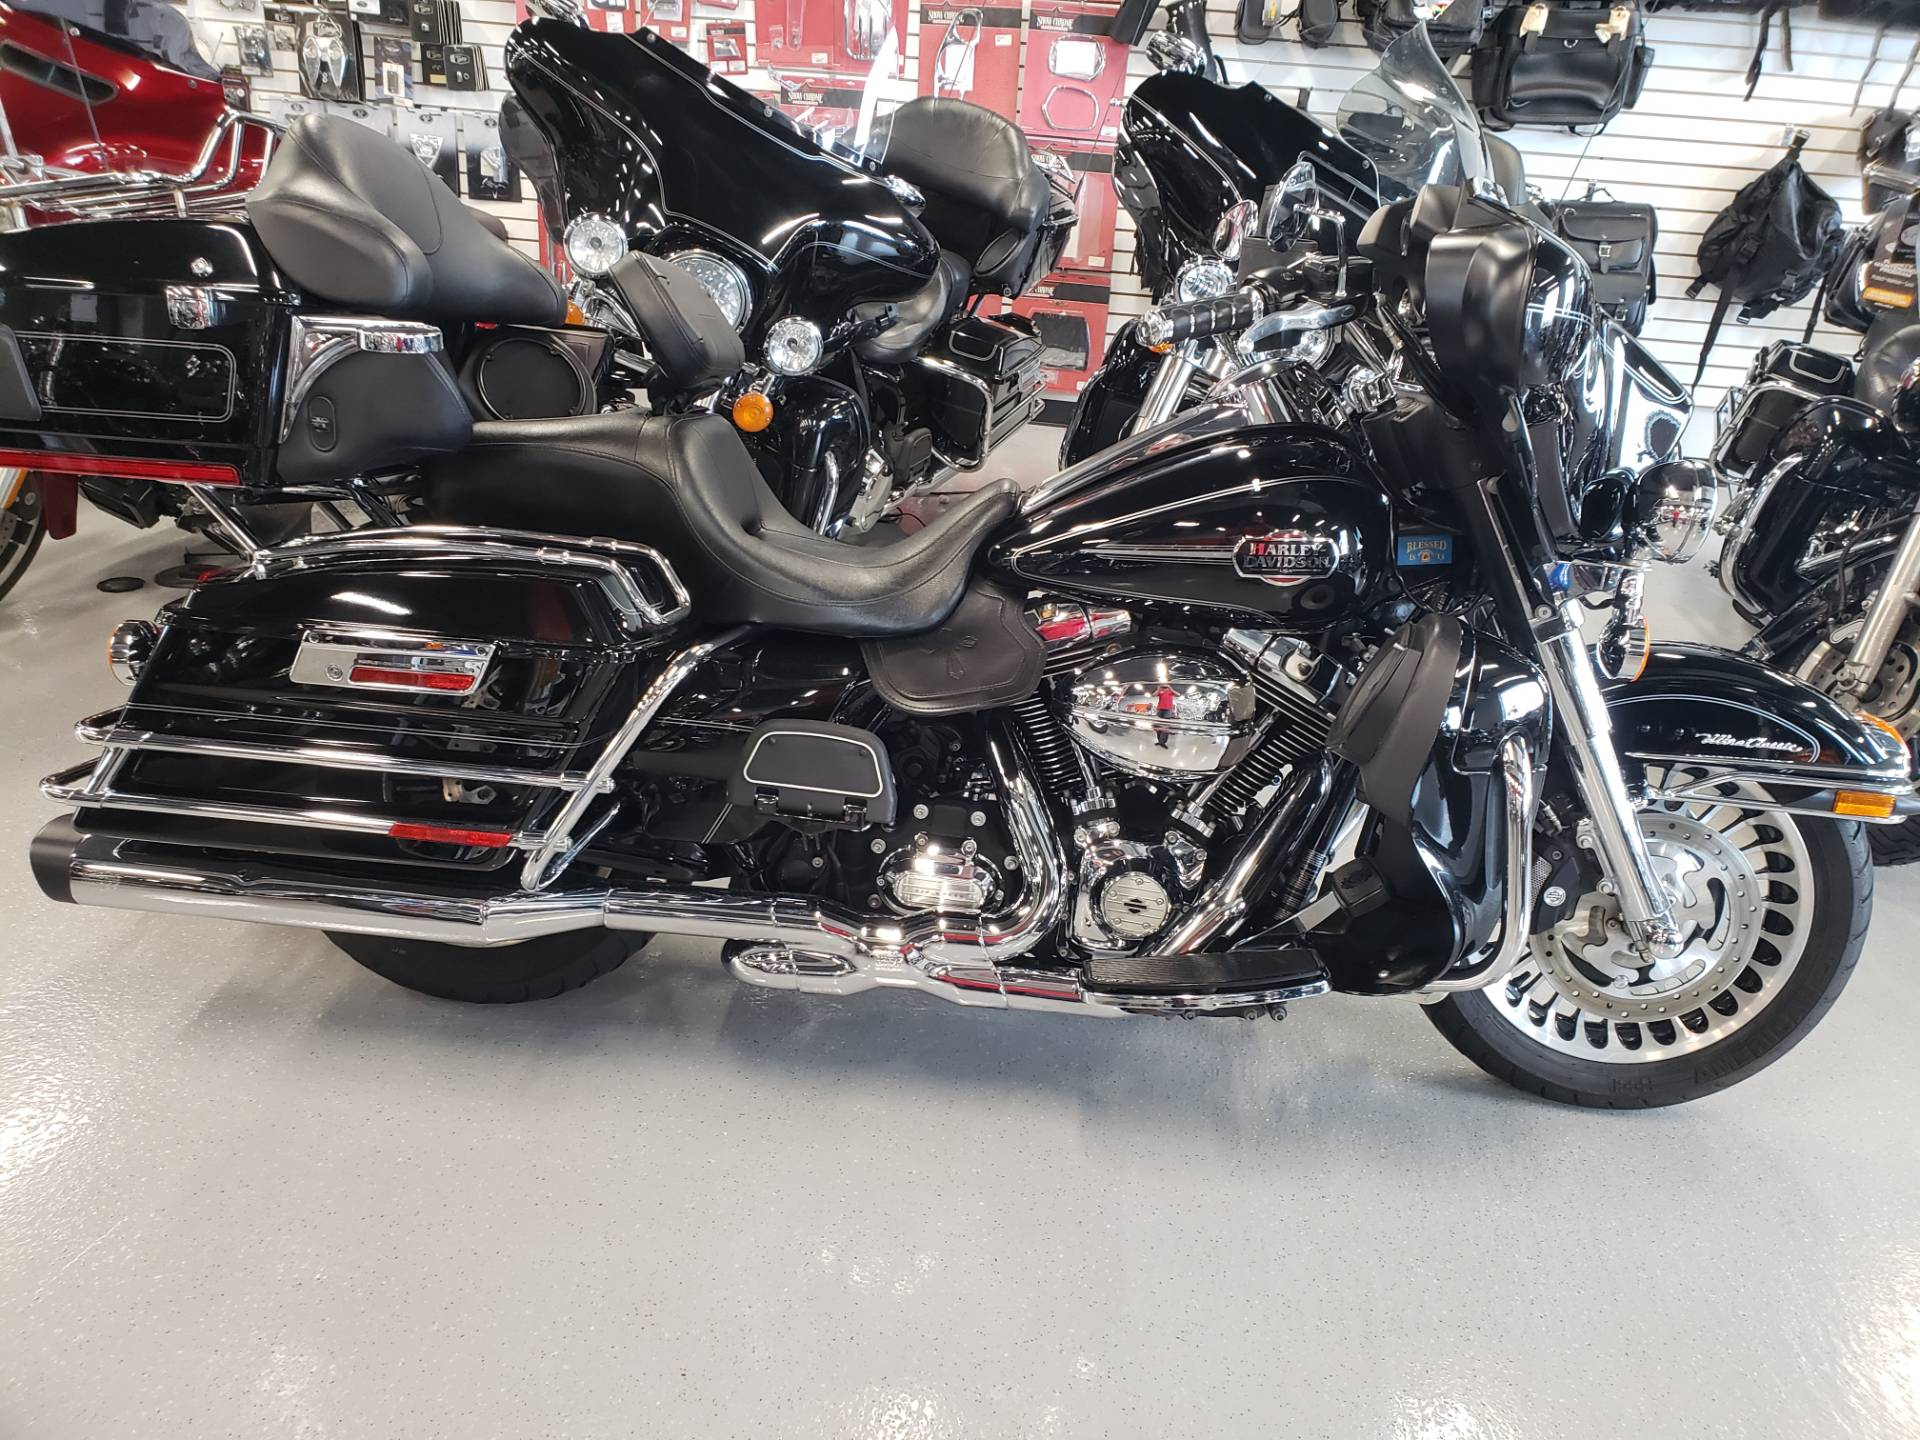 Used 2013 Harley Davidson Ultra Classic Electra Glide Motorcycles